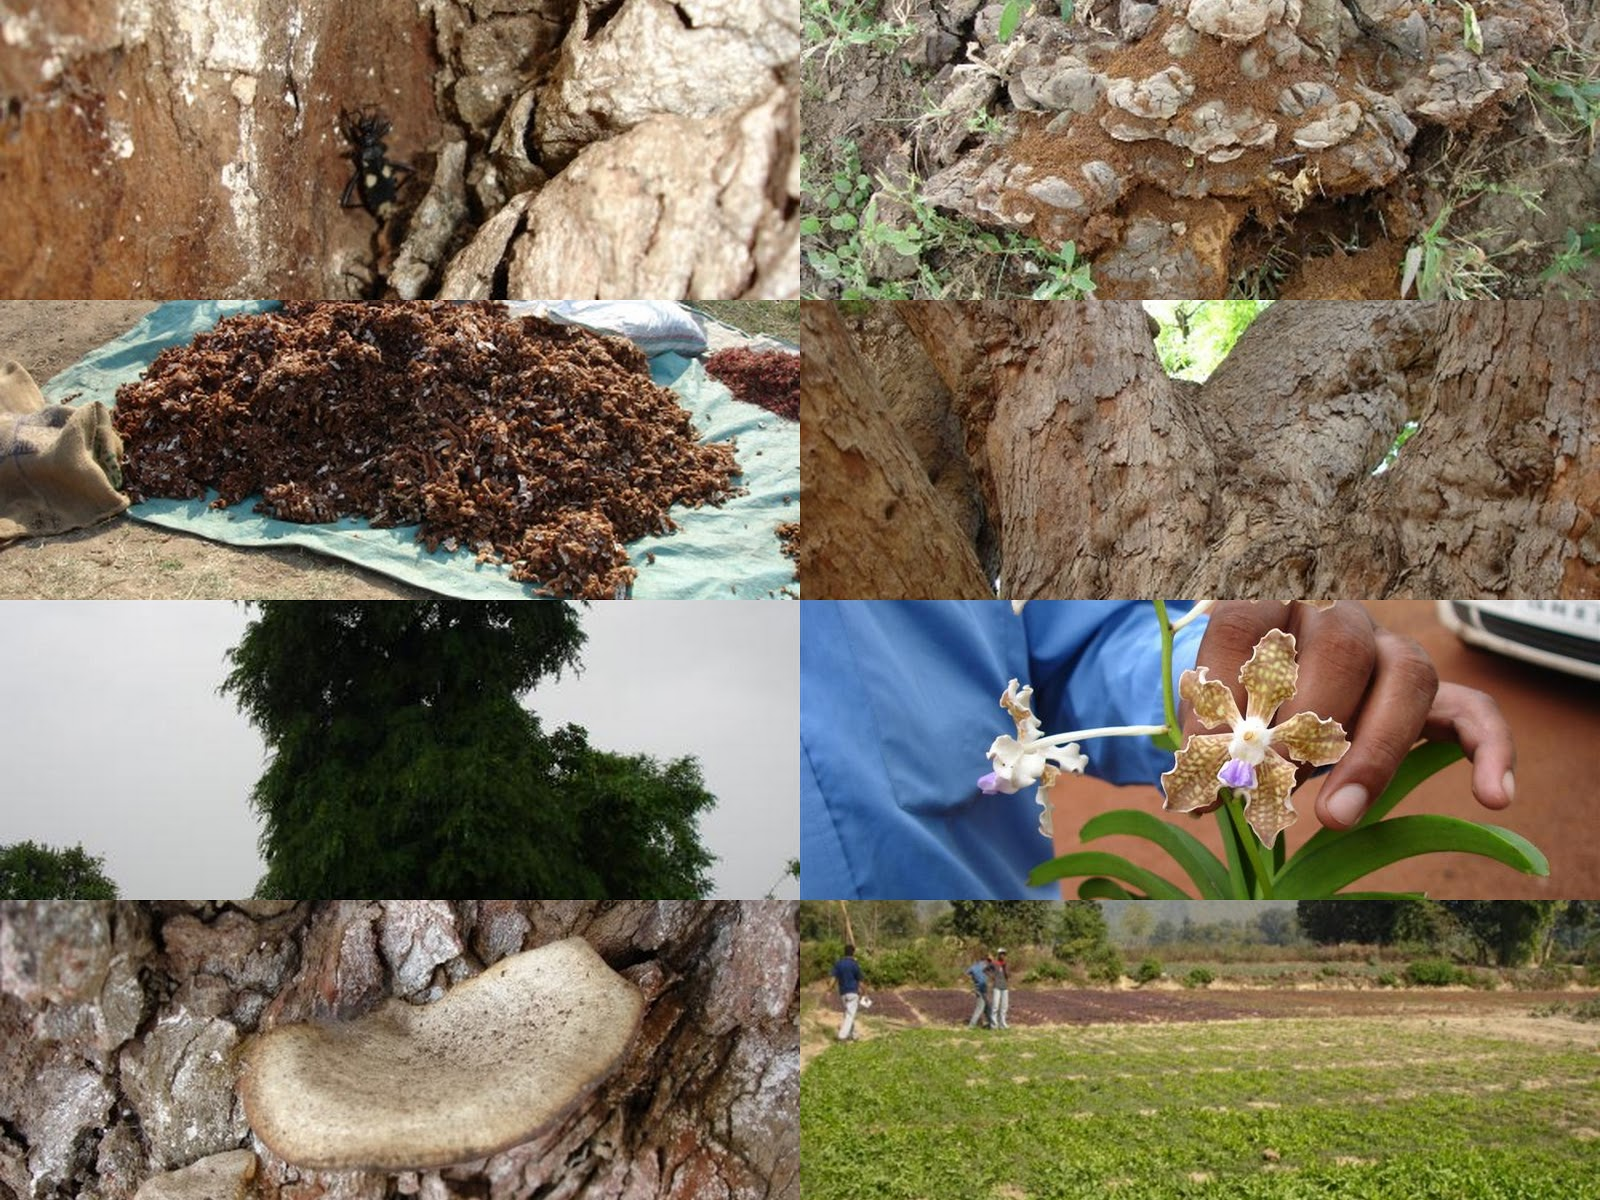 medicinal plants research papers Medicinal plants research papers анатолий живенков загрузка.